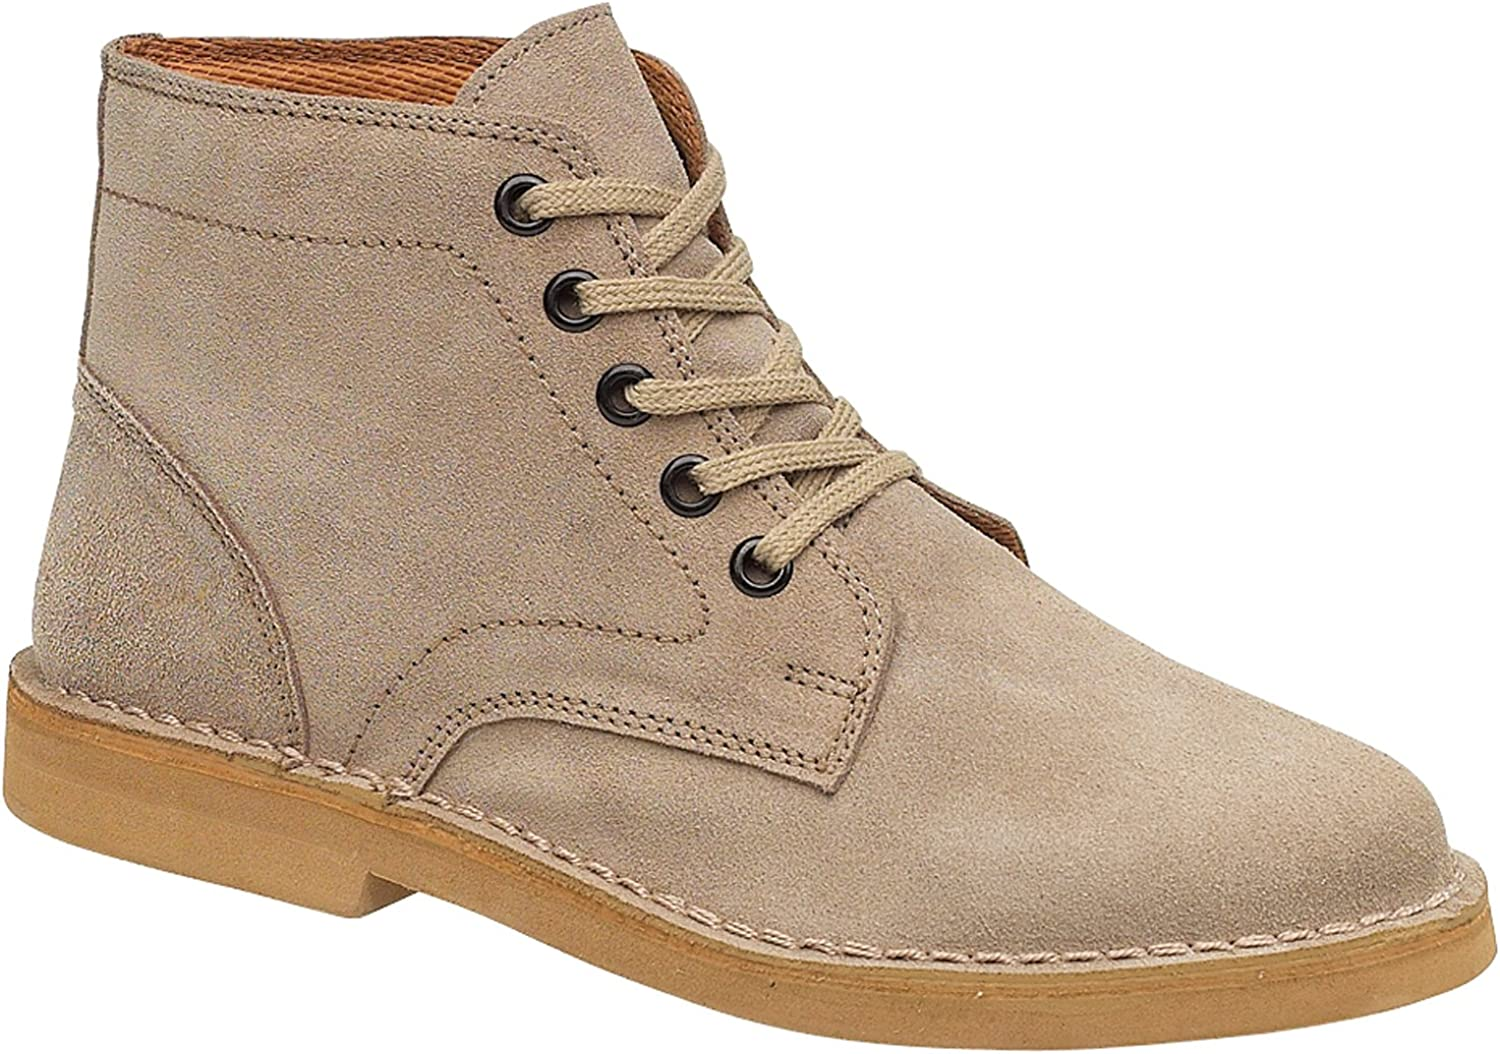 Amblers Lace-Up Textile Lined Mens stivali - Taupe - Dimensione 6 7 8 9 10 11